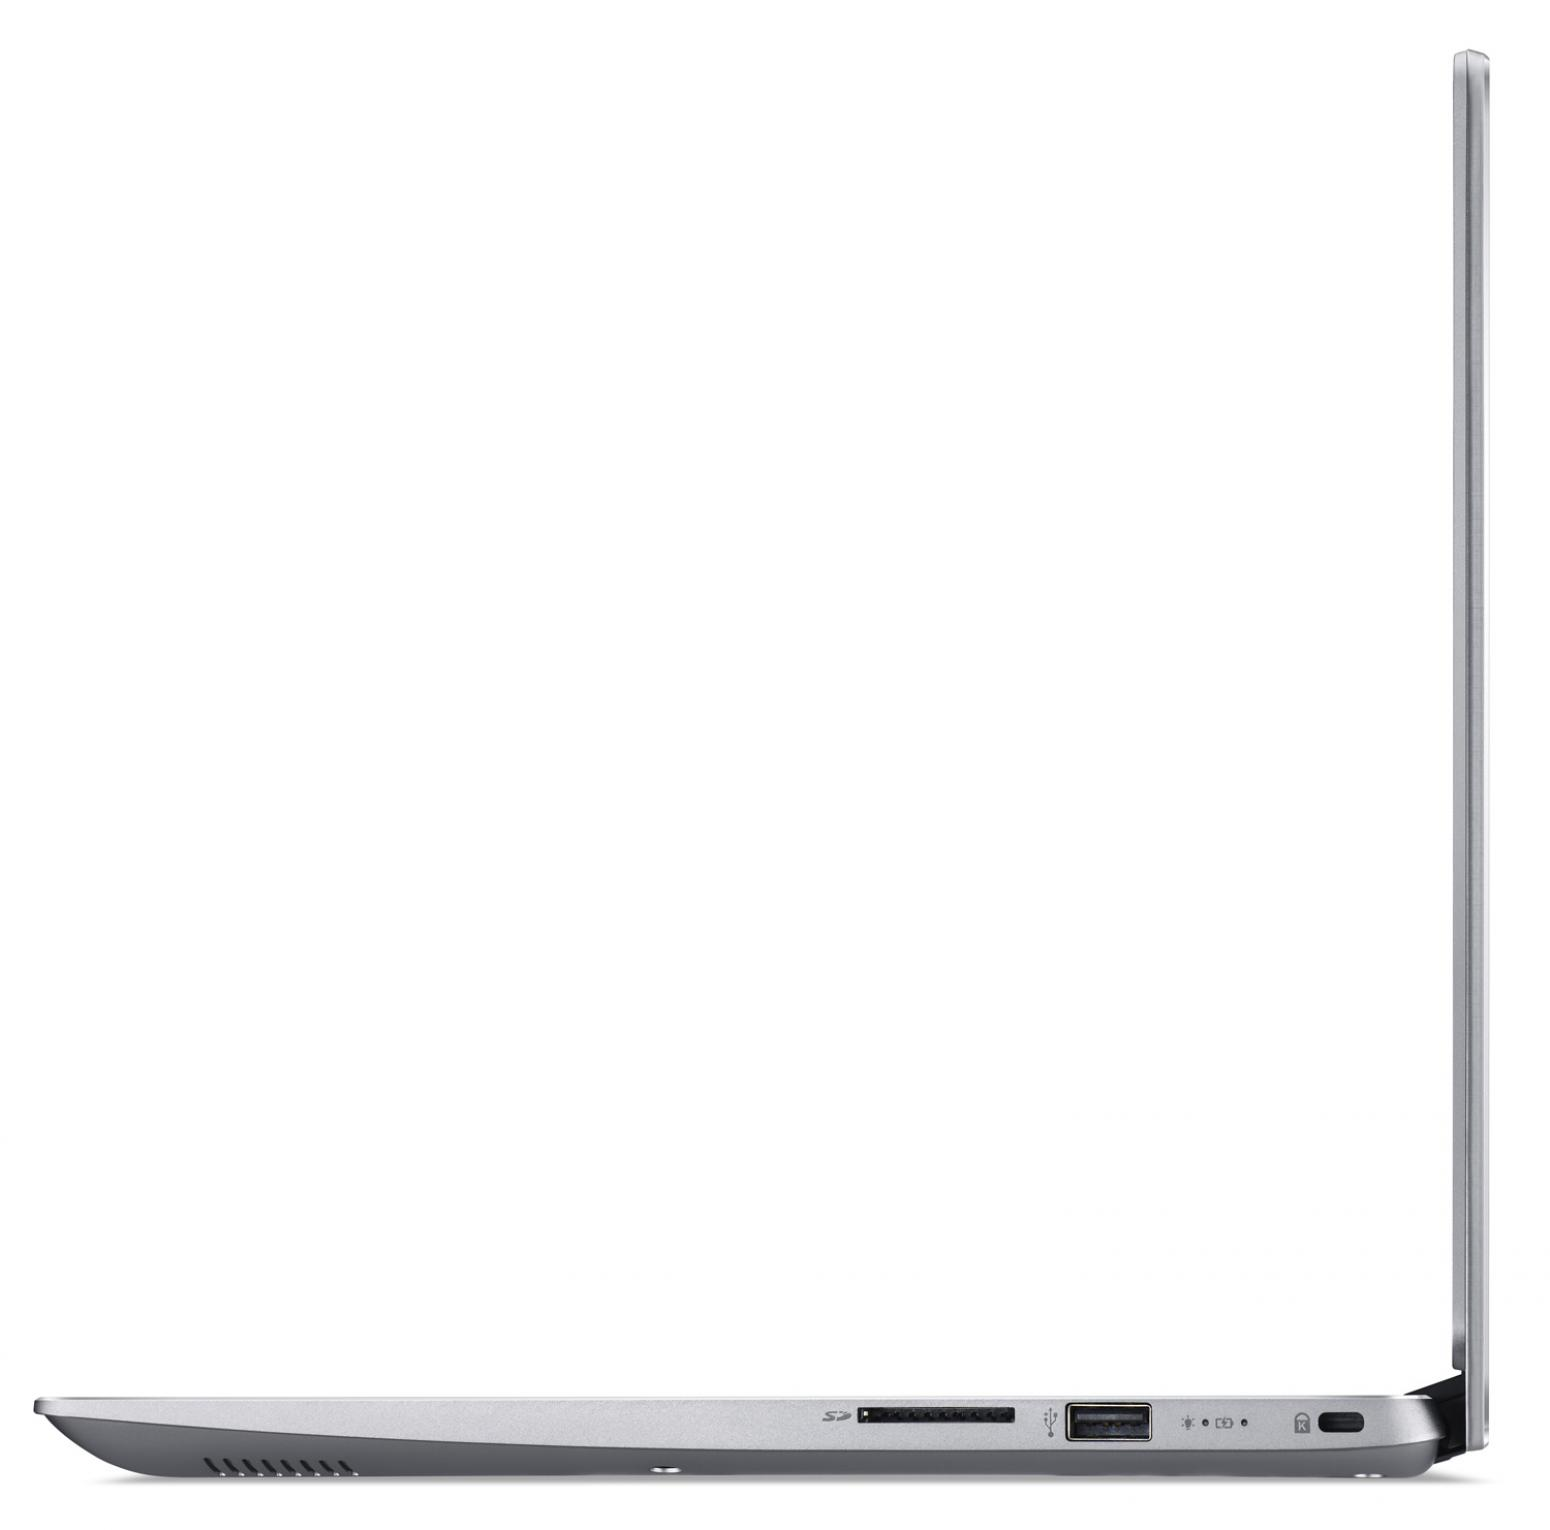 Ordinateur portable Acer Swift 3 SF314-56-31UL Gris - i3 Turbo Boost  - photo 7